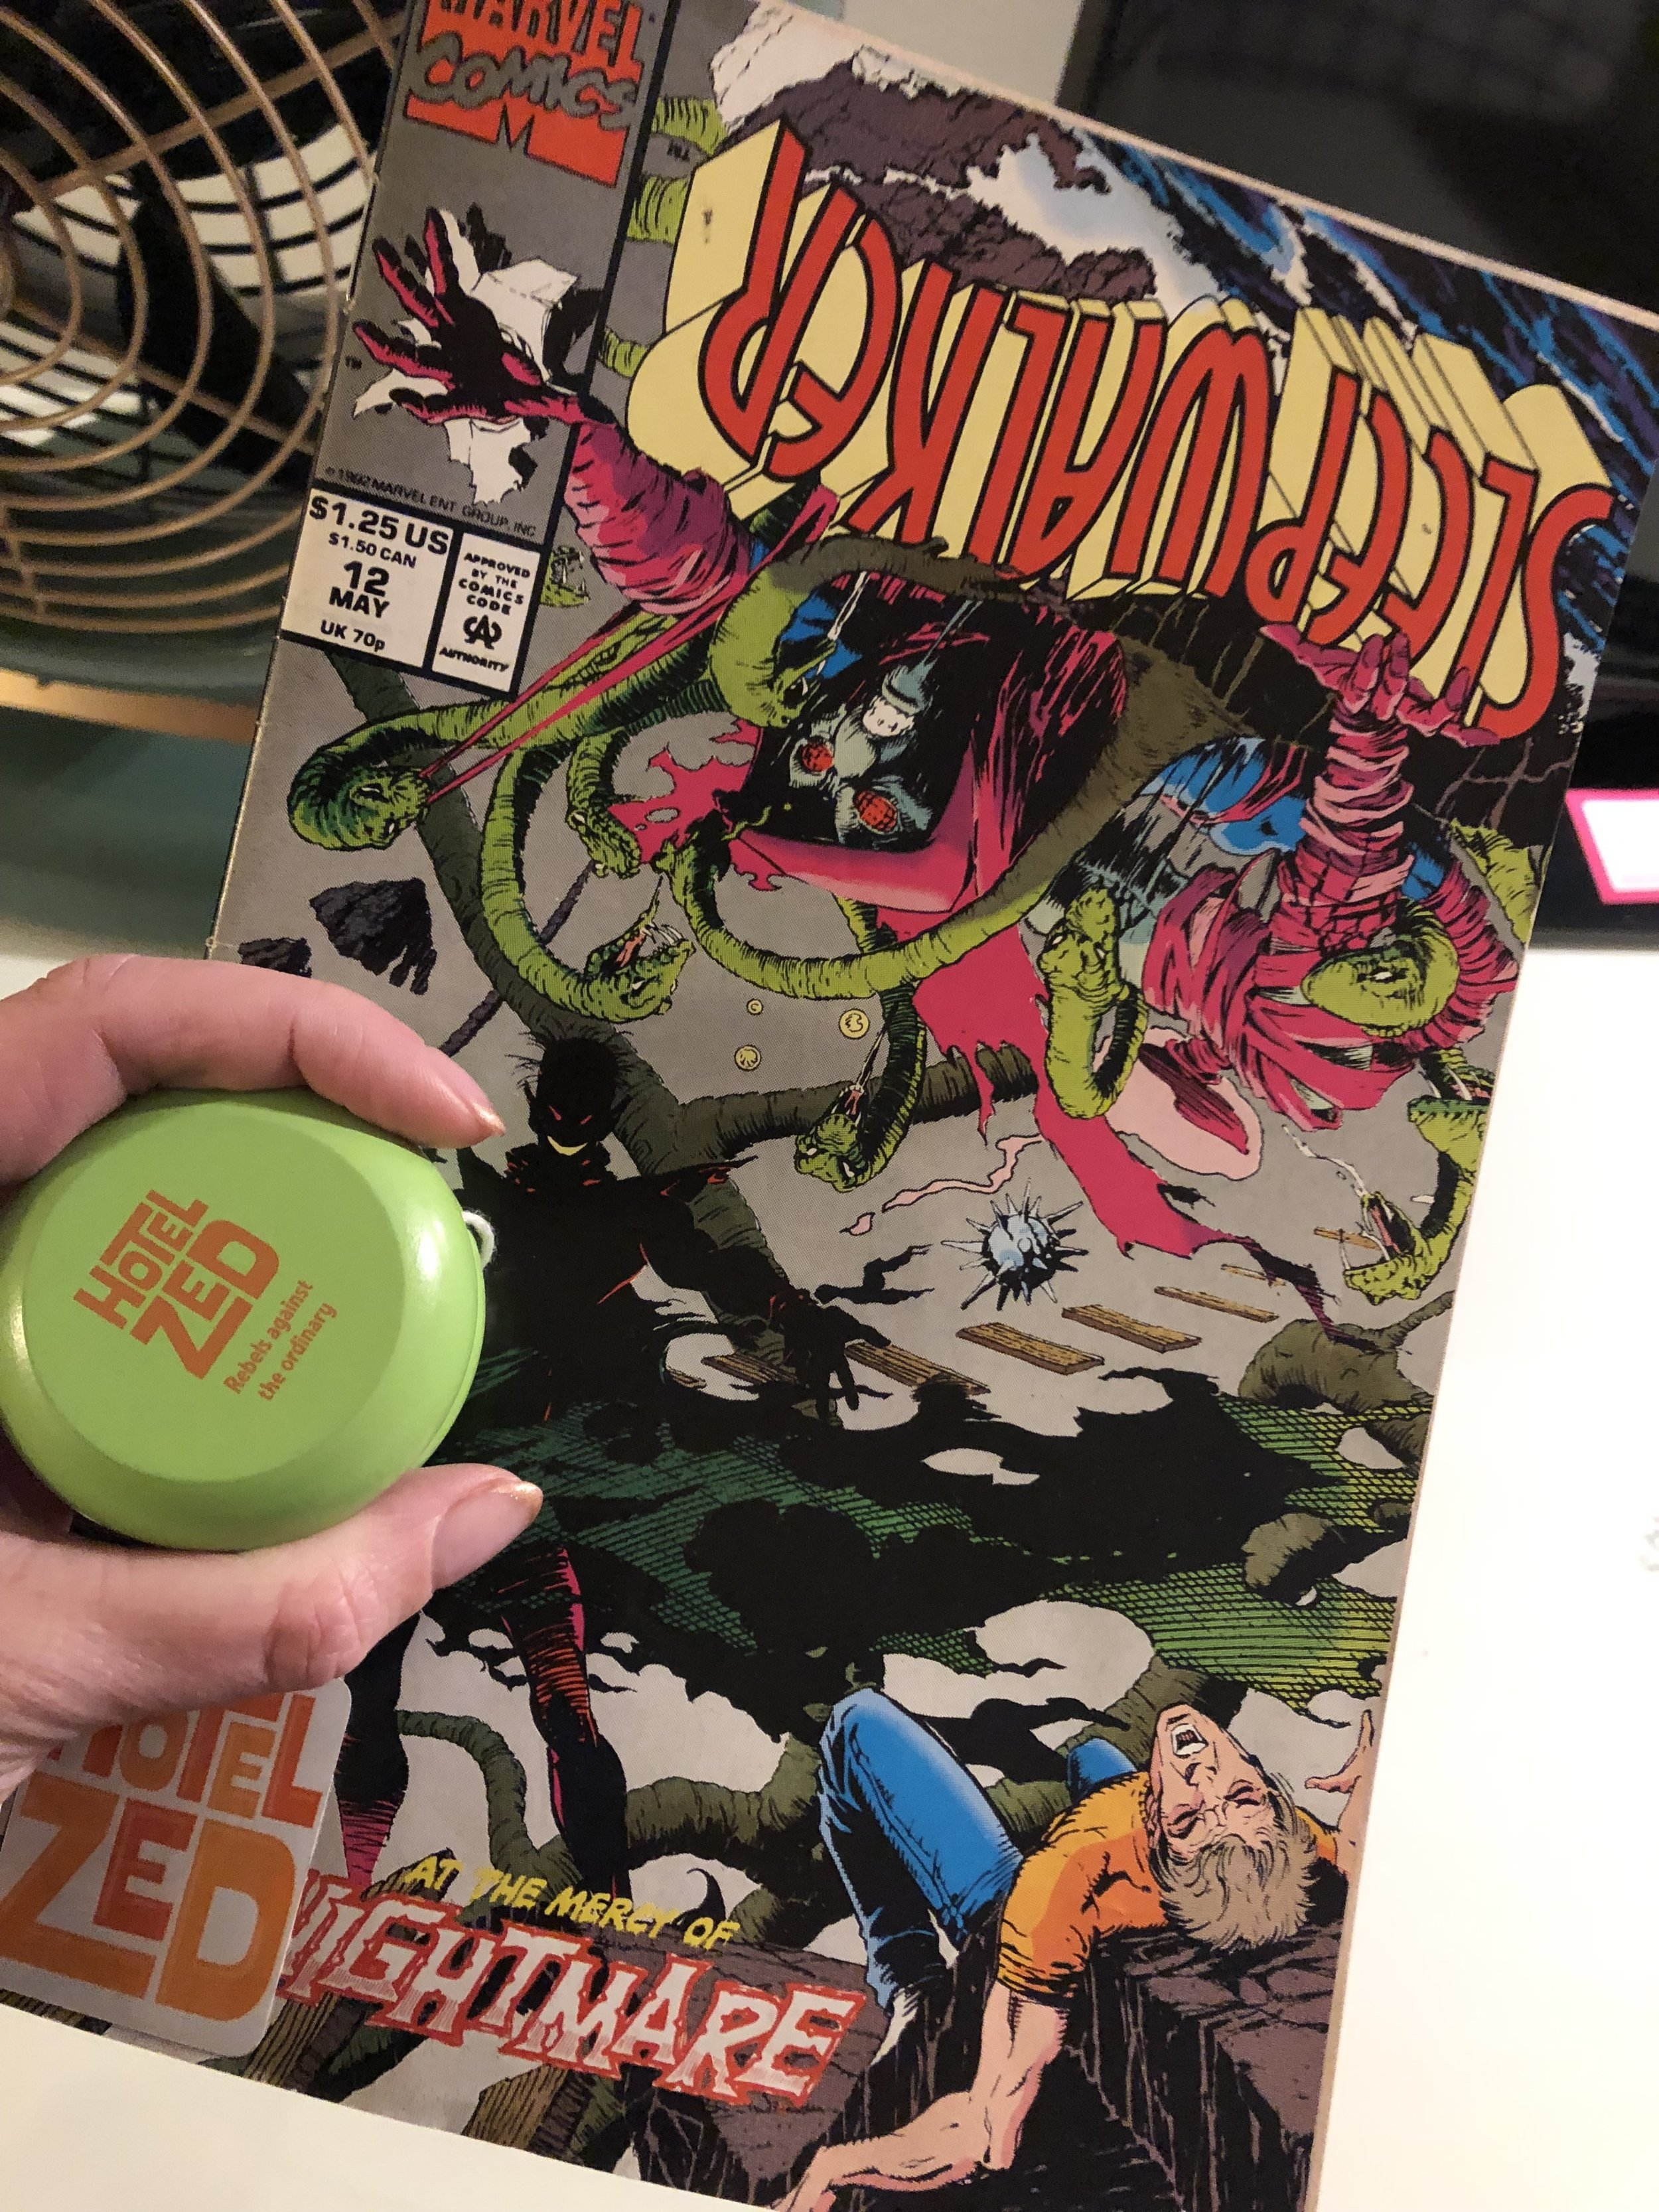 There was a comic book and a yo-yo ready for me in my room!